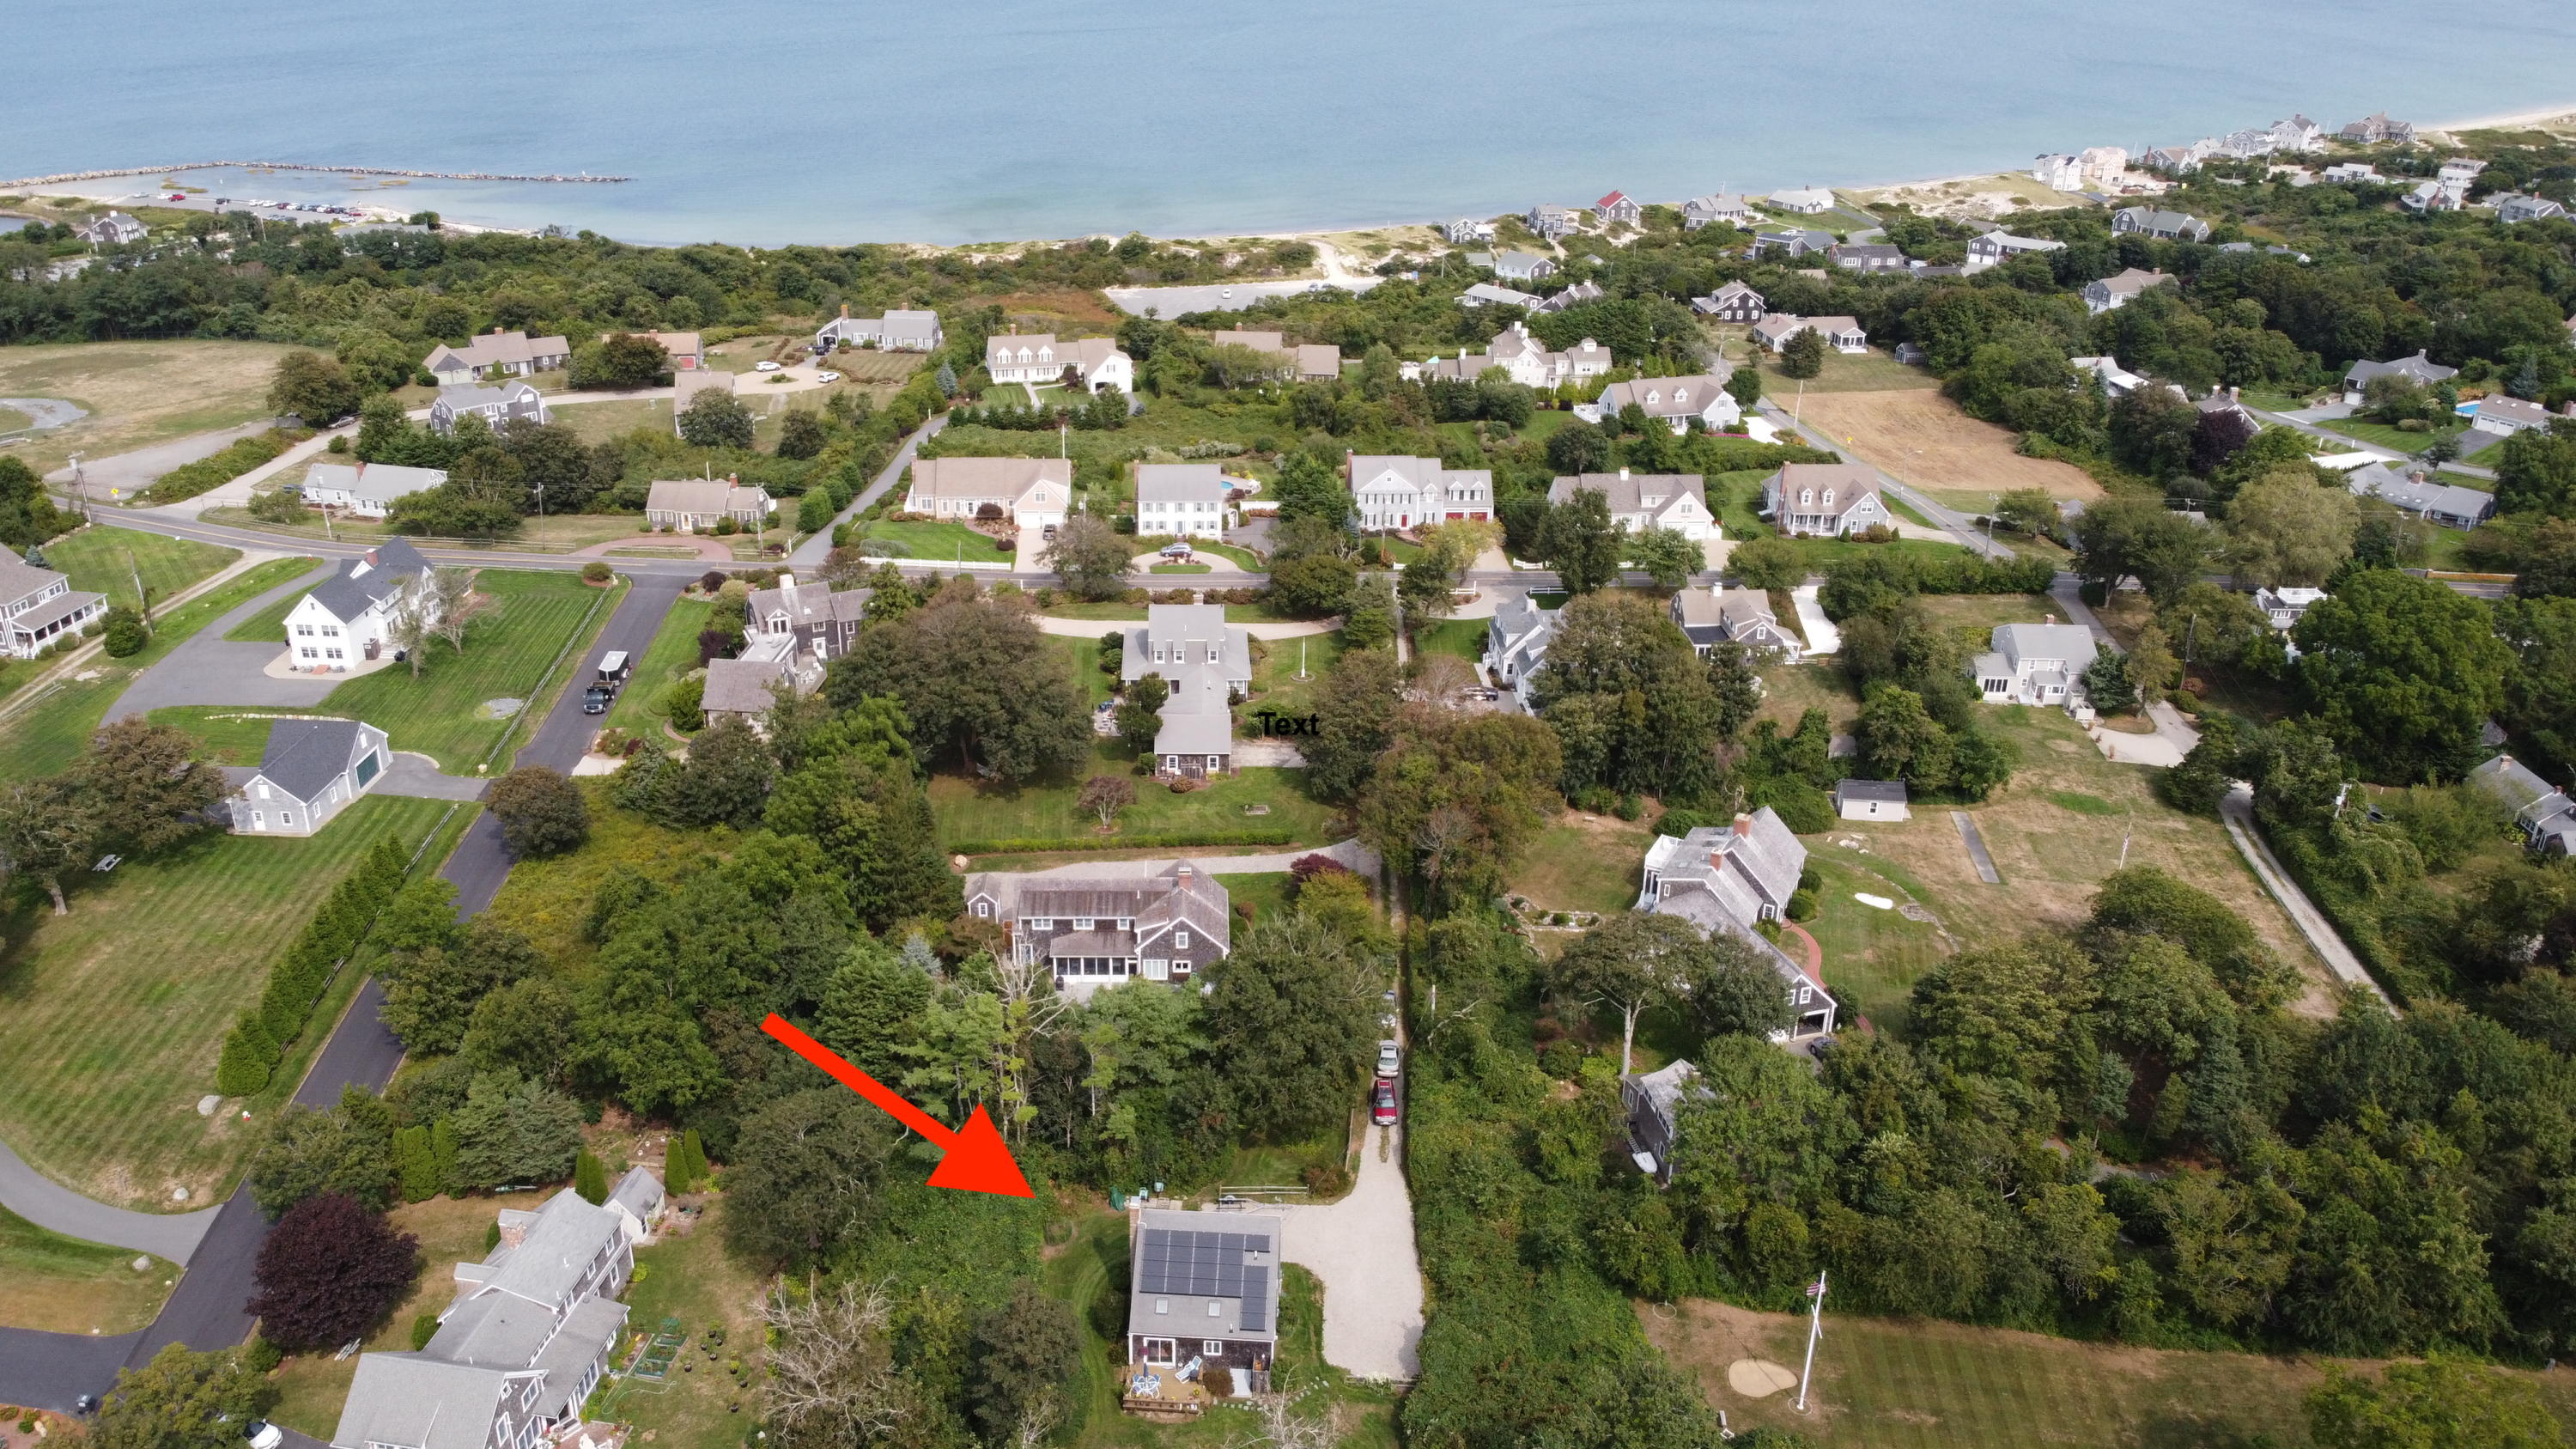 59 Seaside Avenue, Dennis MA, 02638 details